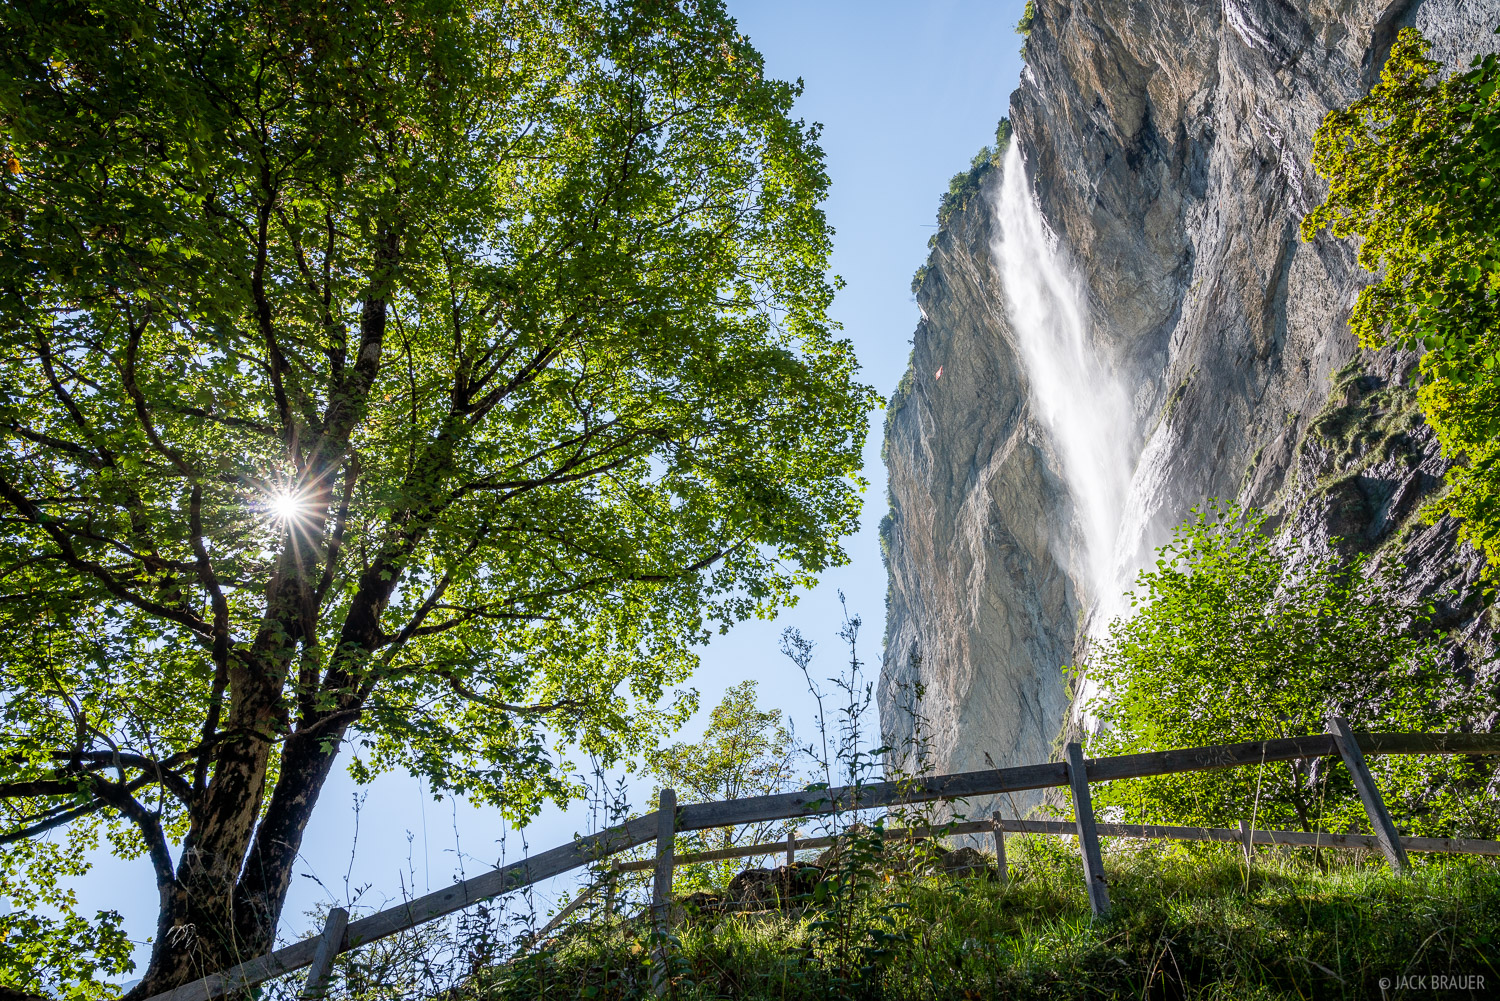 Bernese Alps, Lauterbrunnen, Lauterbrunnental, Staubbachfall, Switzerland, waterfall, Bernese Oberland, Alps, photo